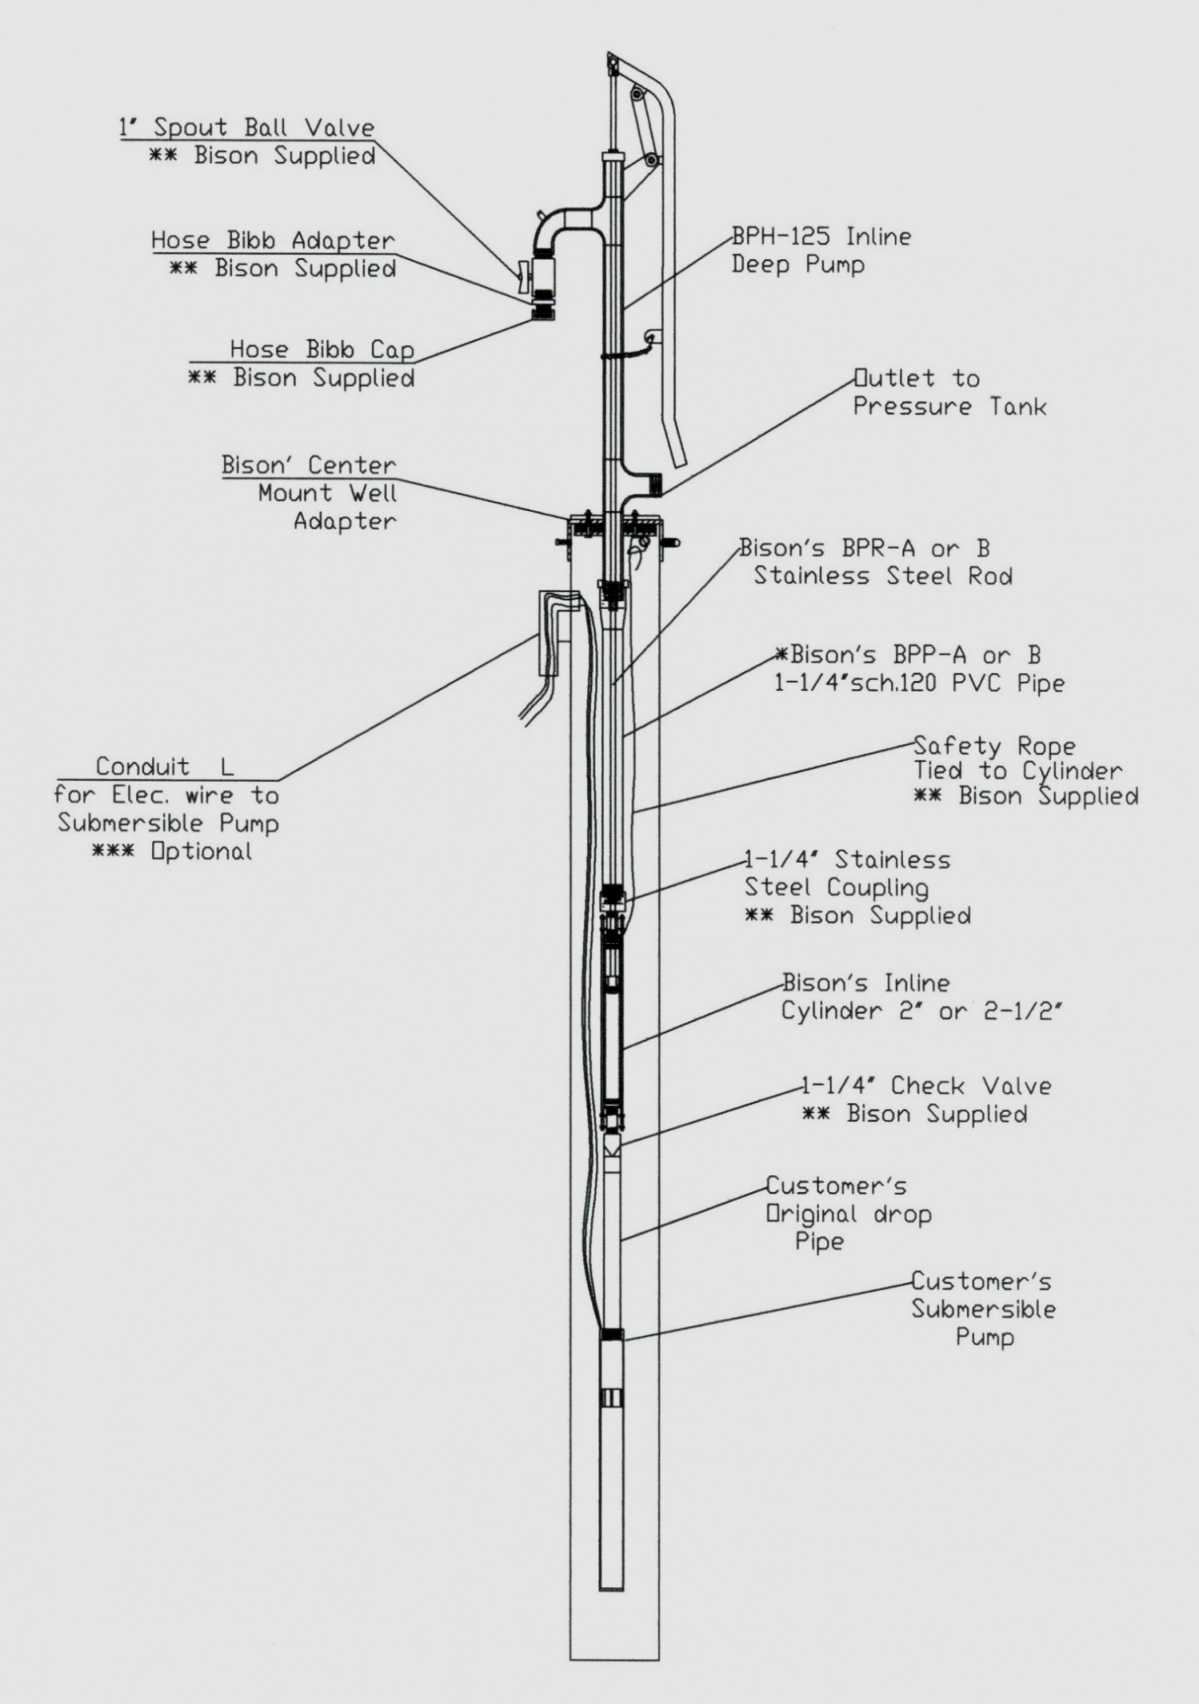 Wiring Diagram For 220 Volt Submersible Pump from annawiringdiagram.com